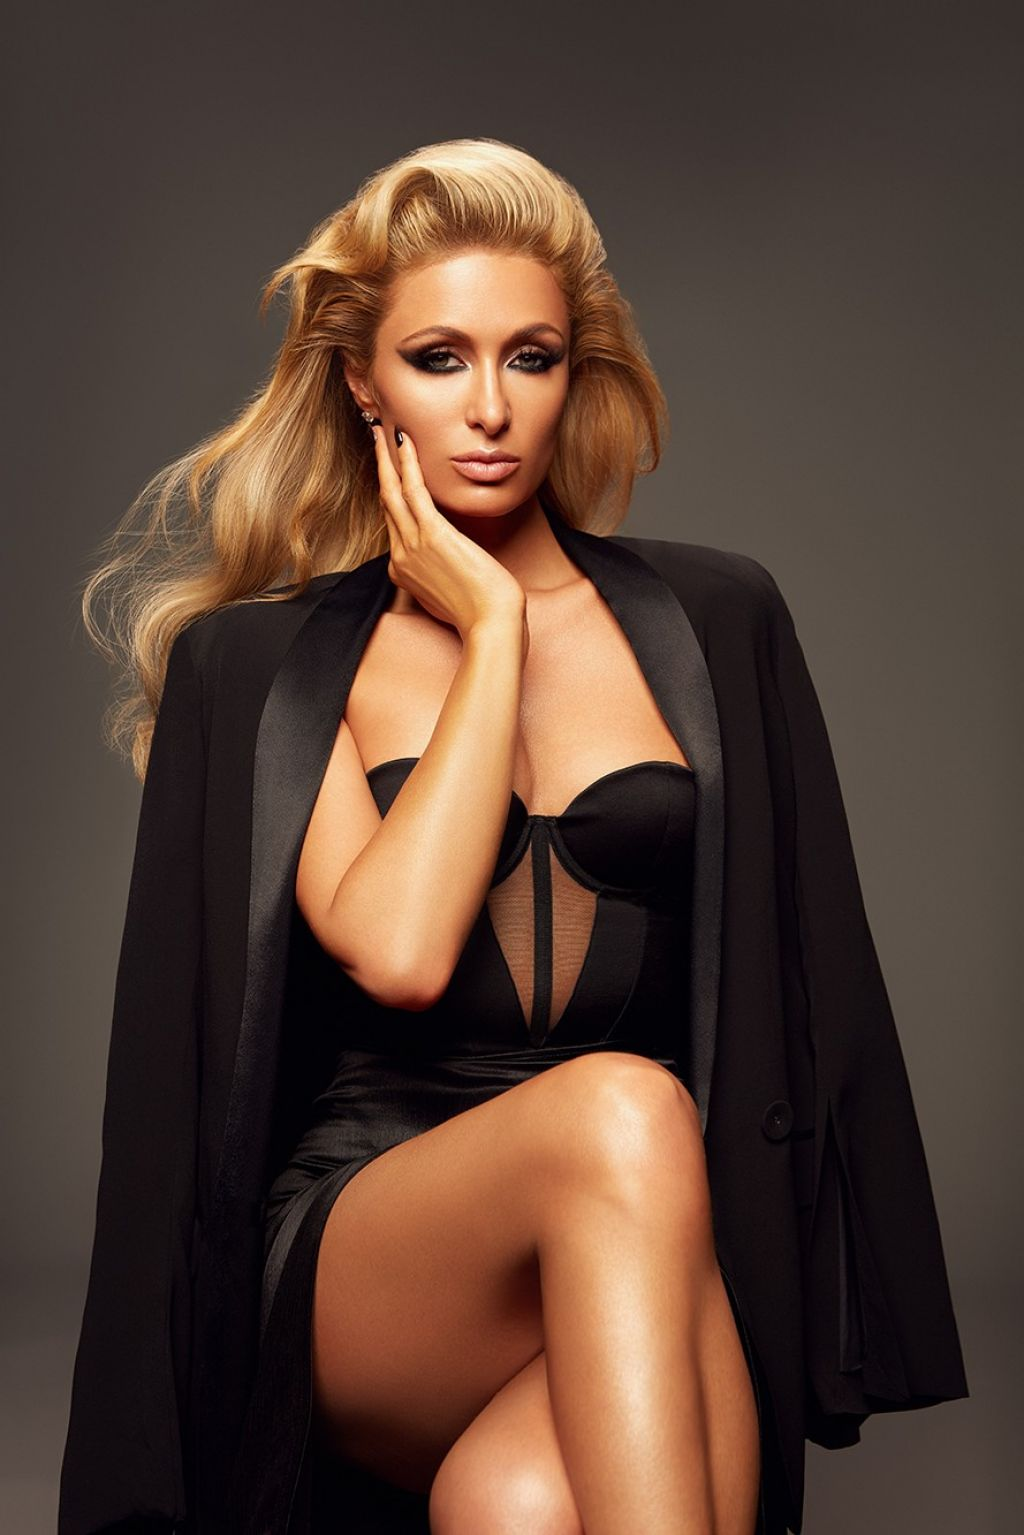 Celebrity sex tape pioneer Paris Hilton in tmrw Magazine, FUCK is she hot!!!